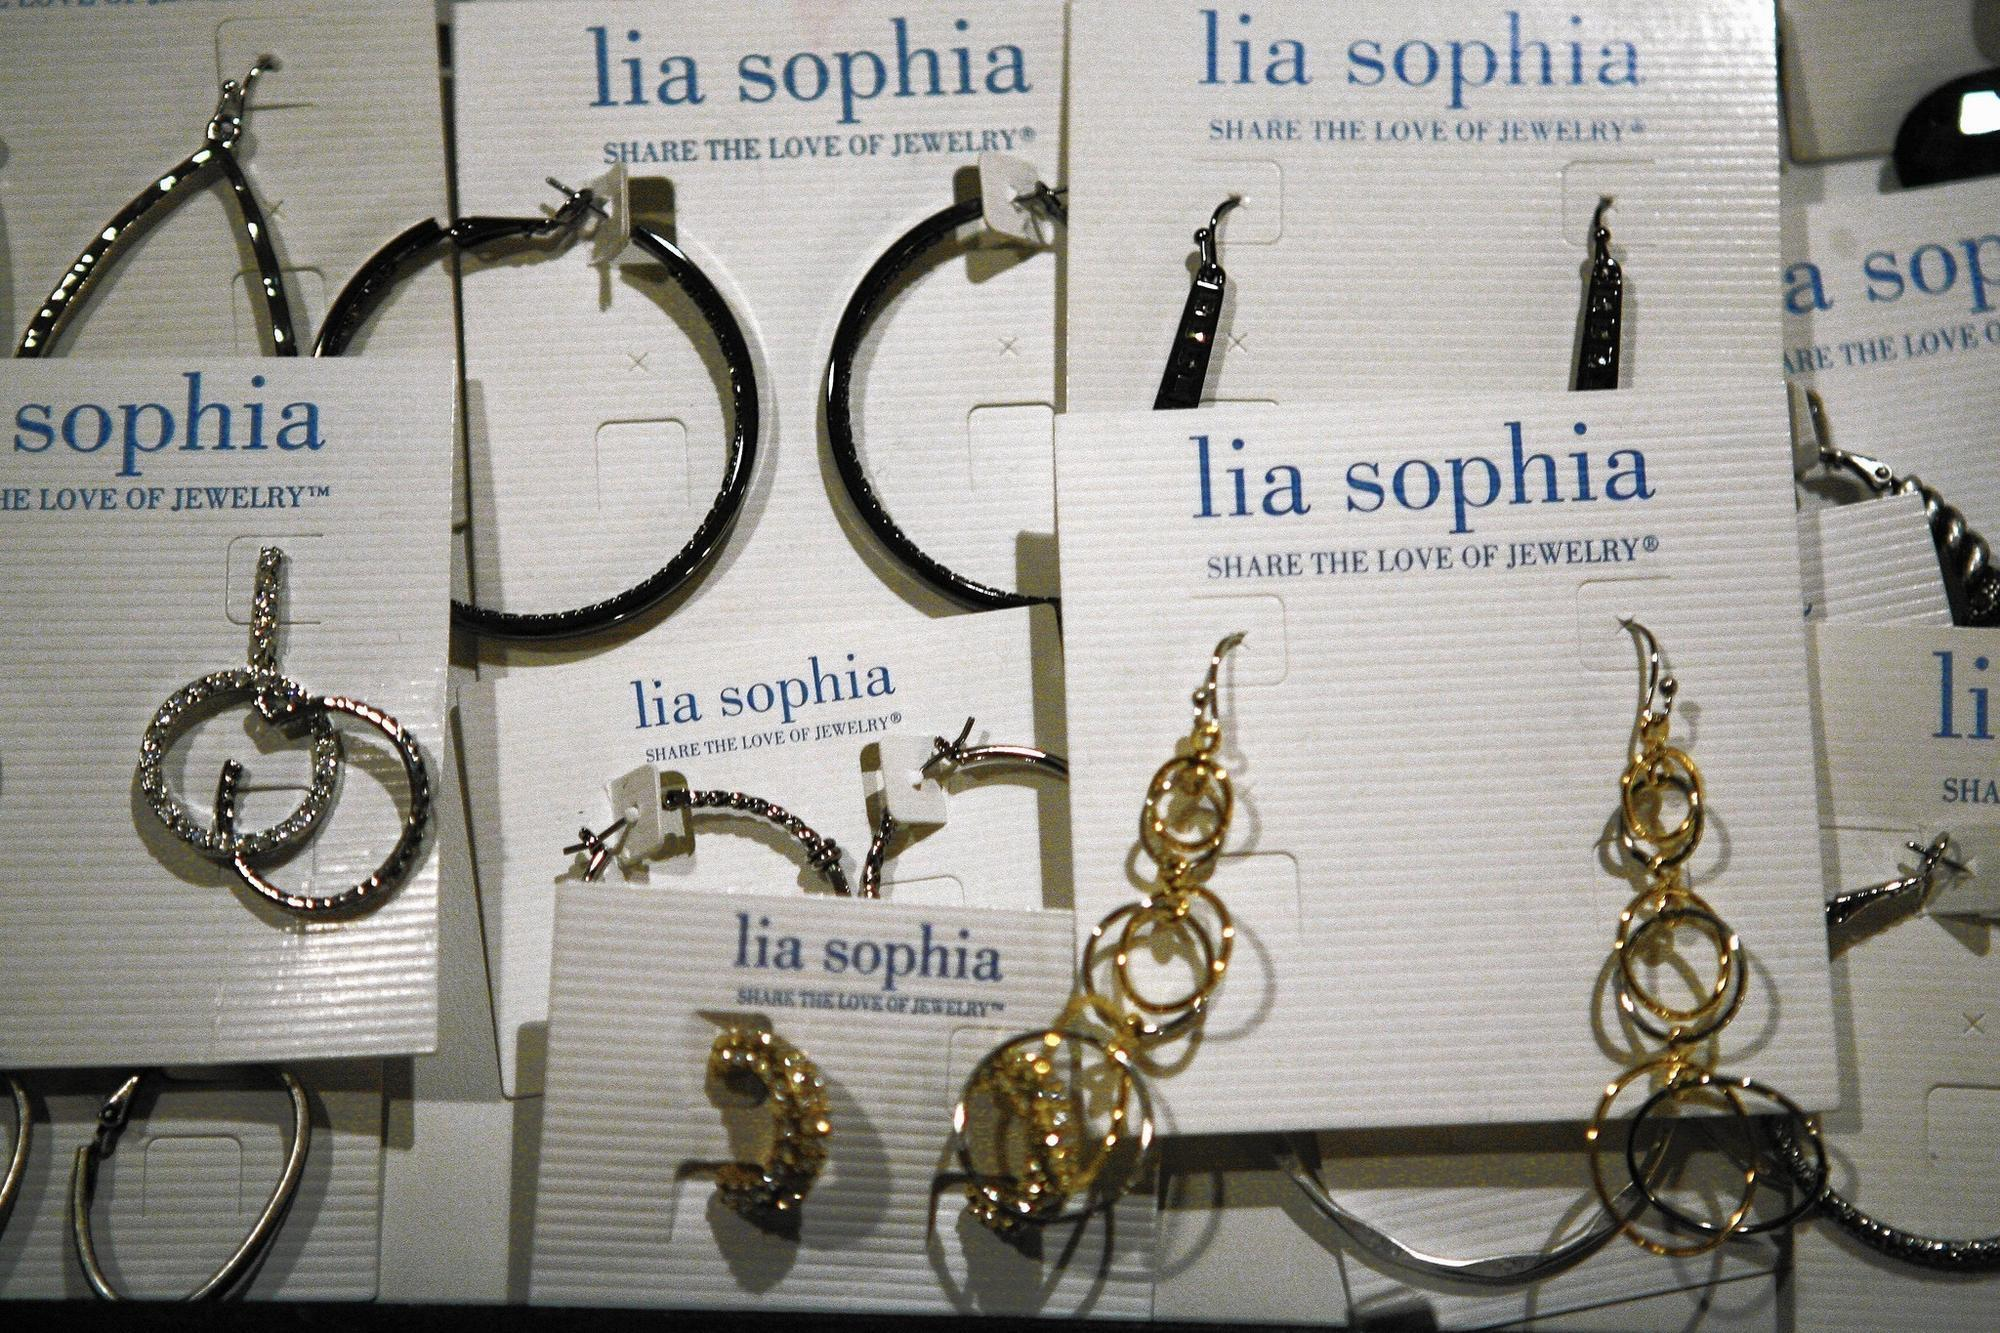 Former Lia Sophia S Reps Customers To Get Cash Settlements Chicago Tribune